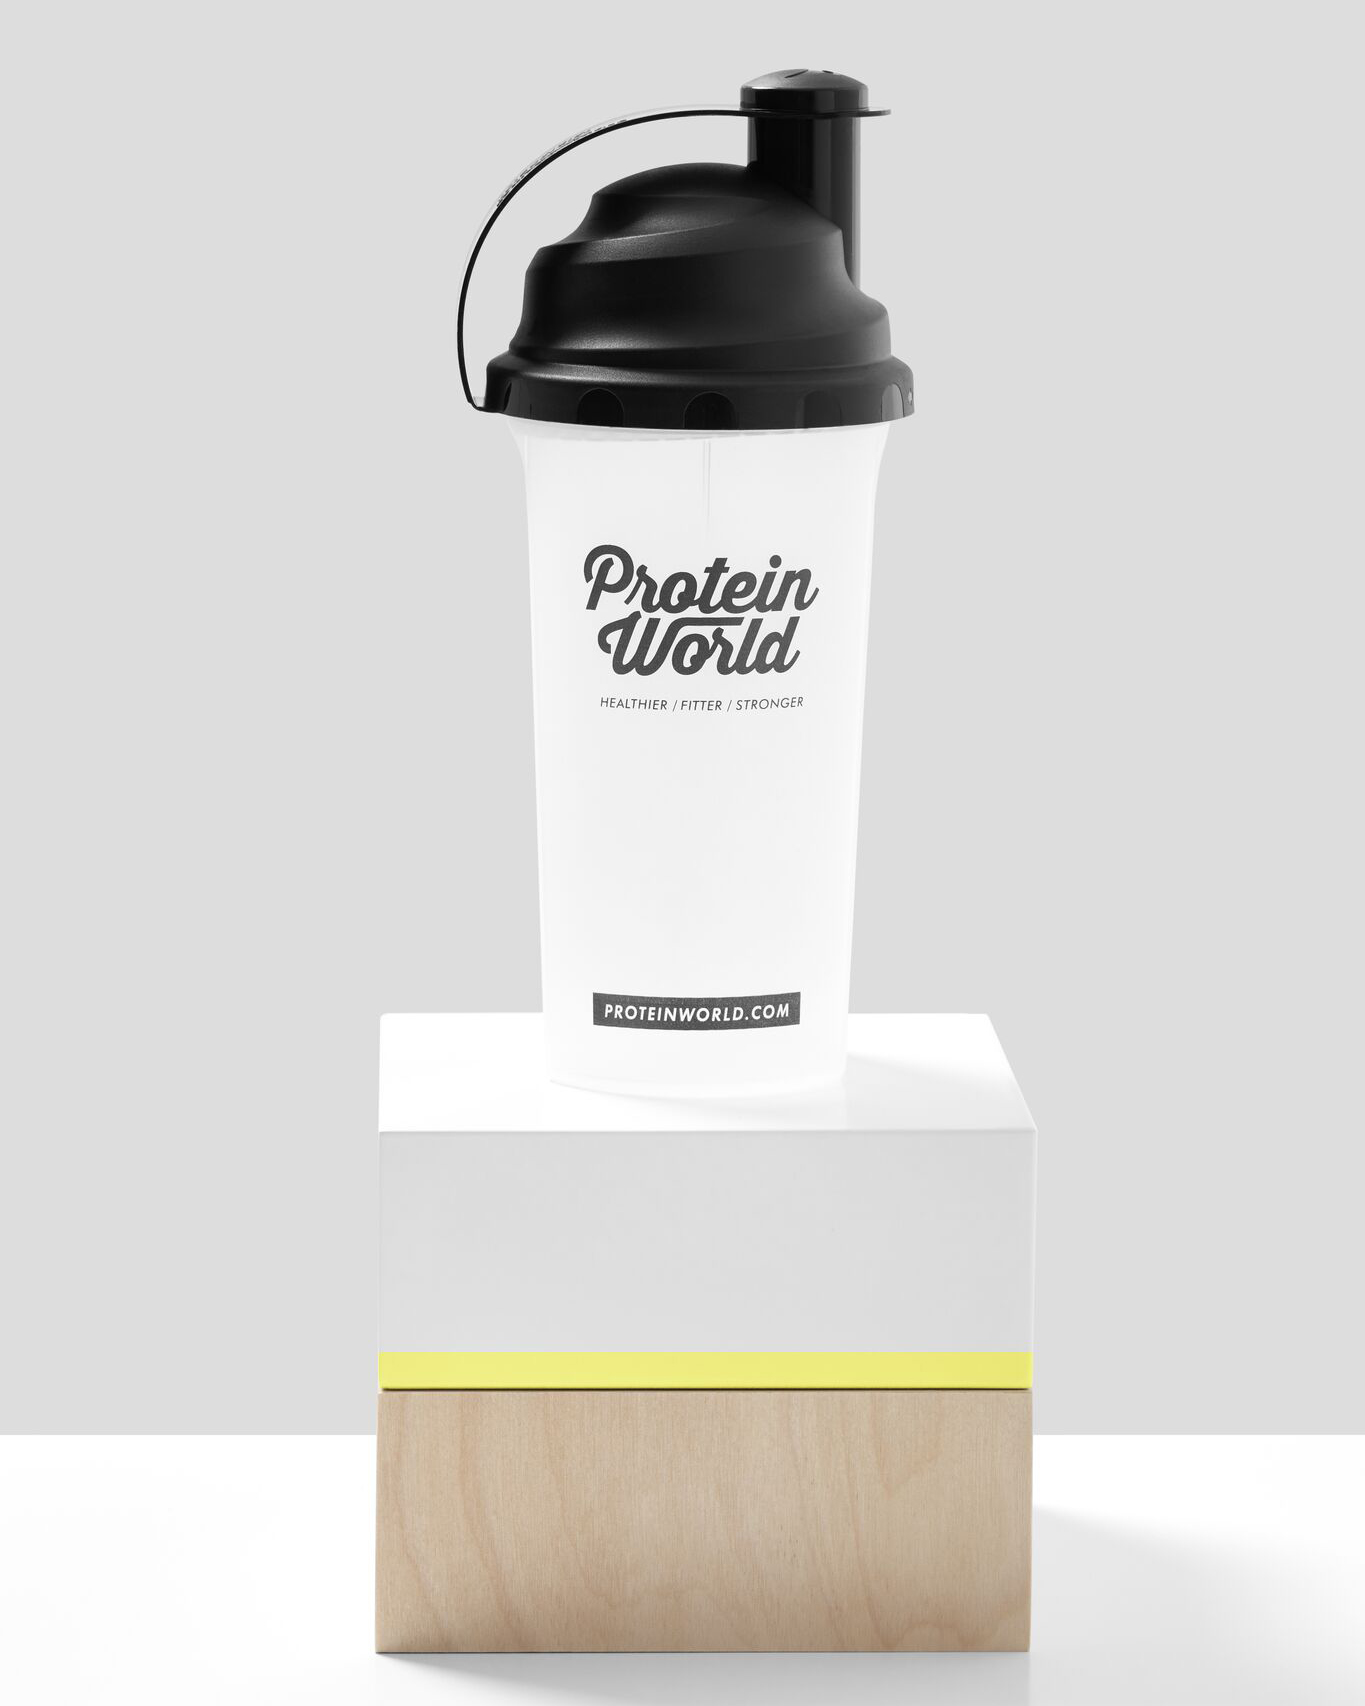 packshot photography product protein World SHED london